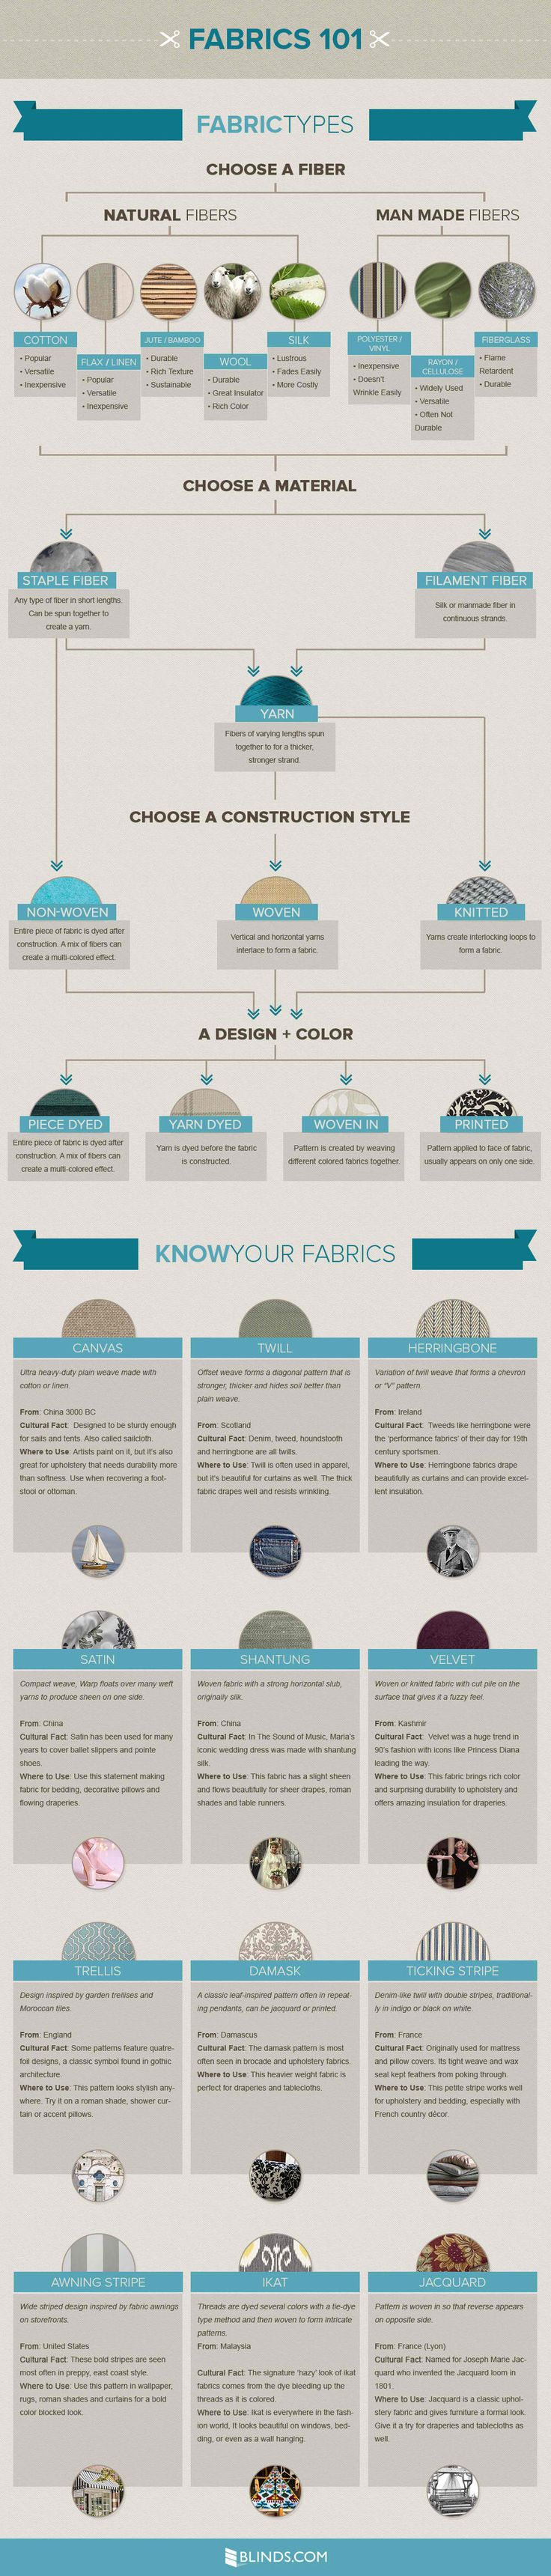 Picking Fabric For Upholstery And The Like  Be Your Own Interior Designer With These Infographics • Page 2 of 10 • BoredBug